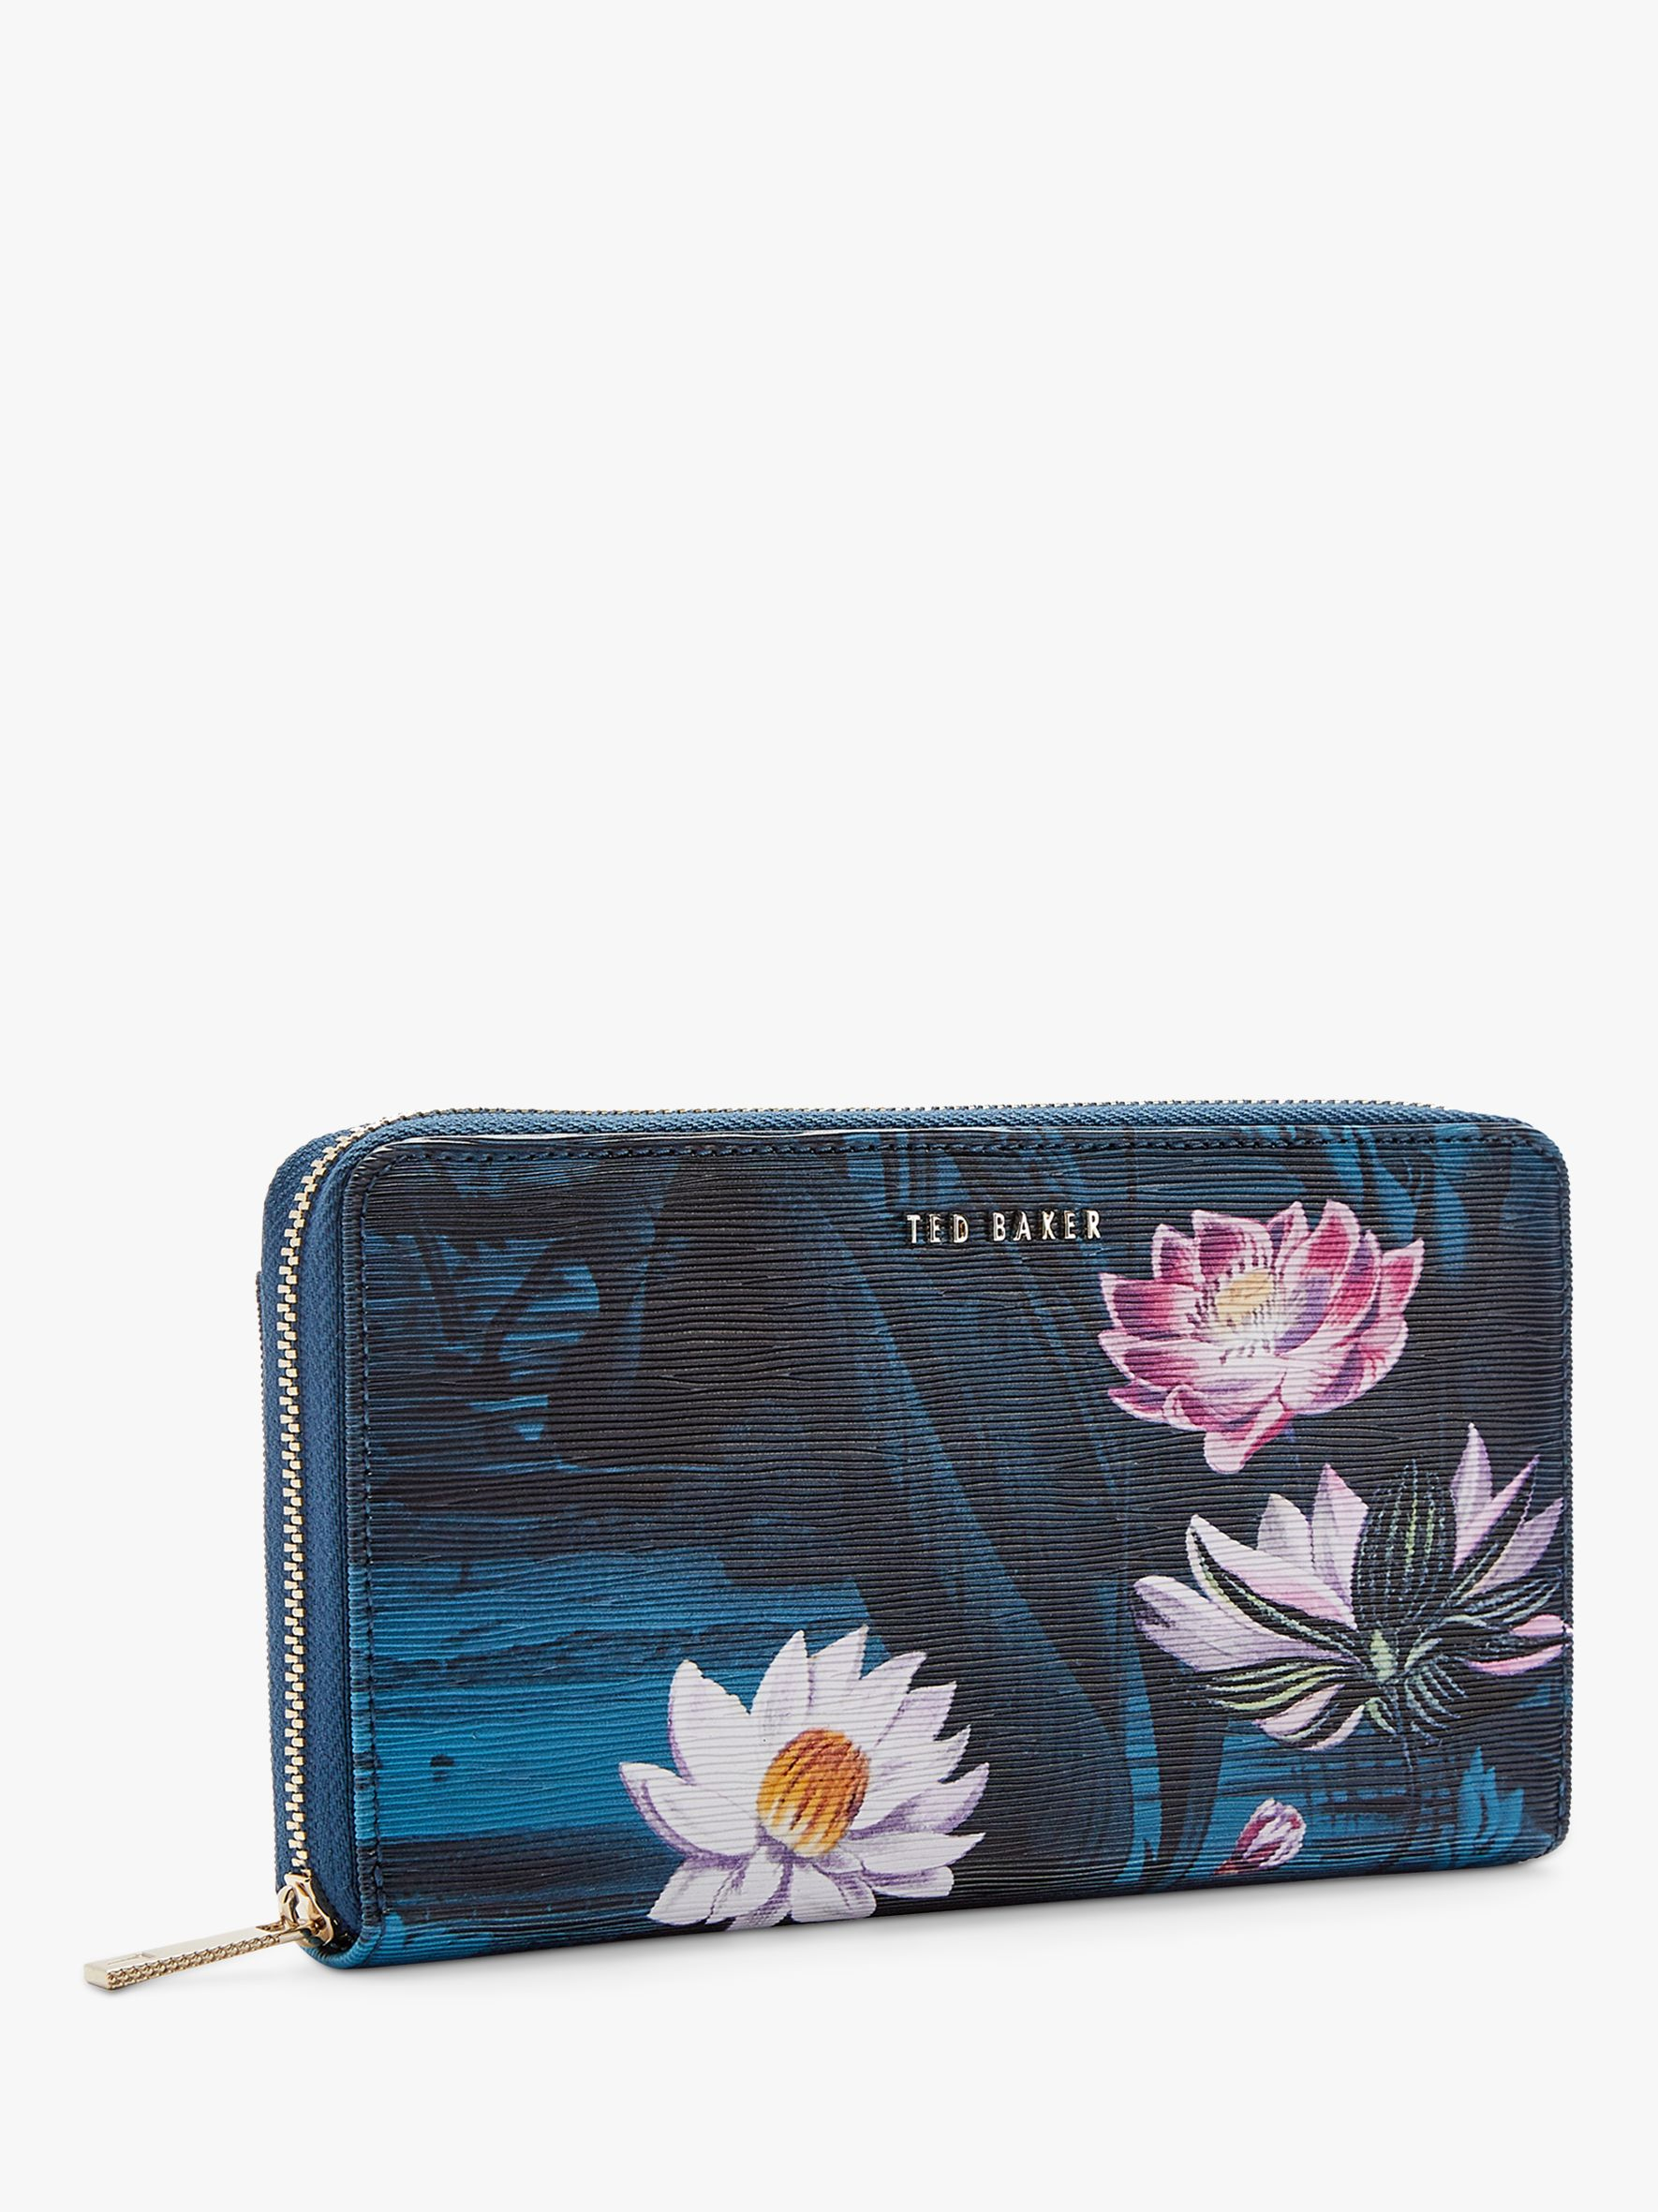 wholesale dealer db1bf b78ca Ted Baker Dotti Floral Leather Matinee Zip Around Purse, Teal/Multi